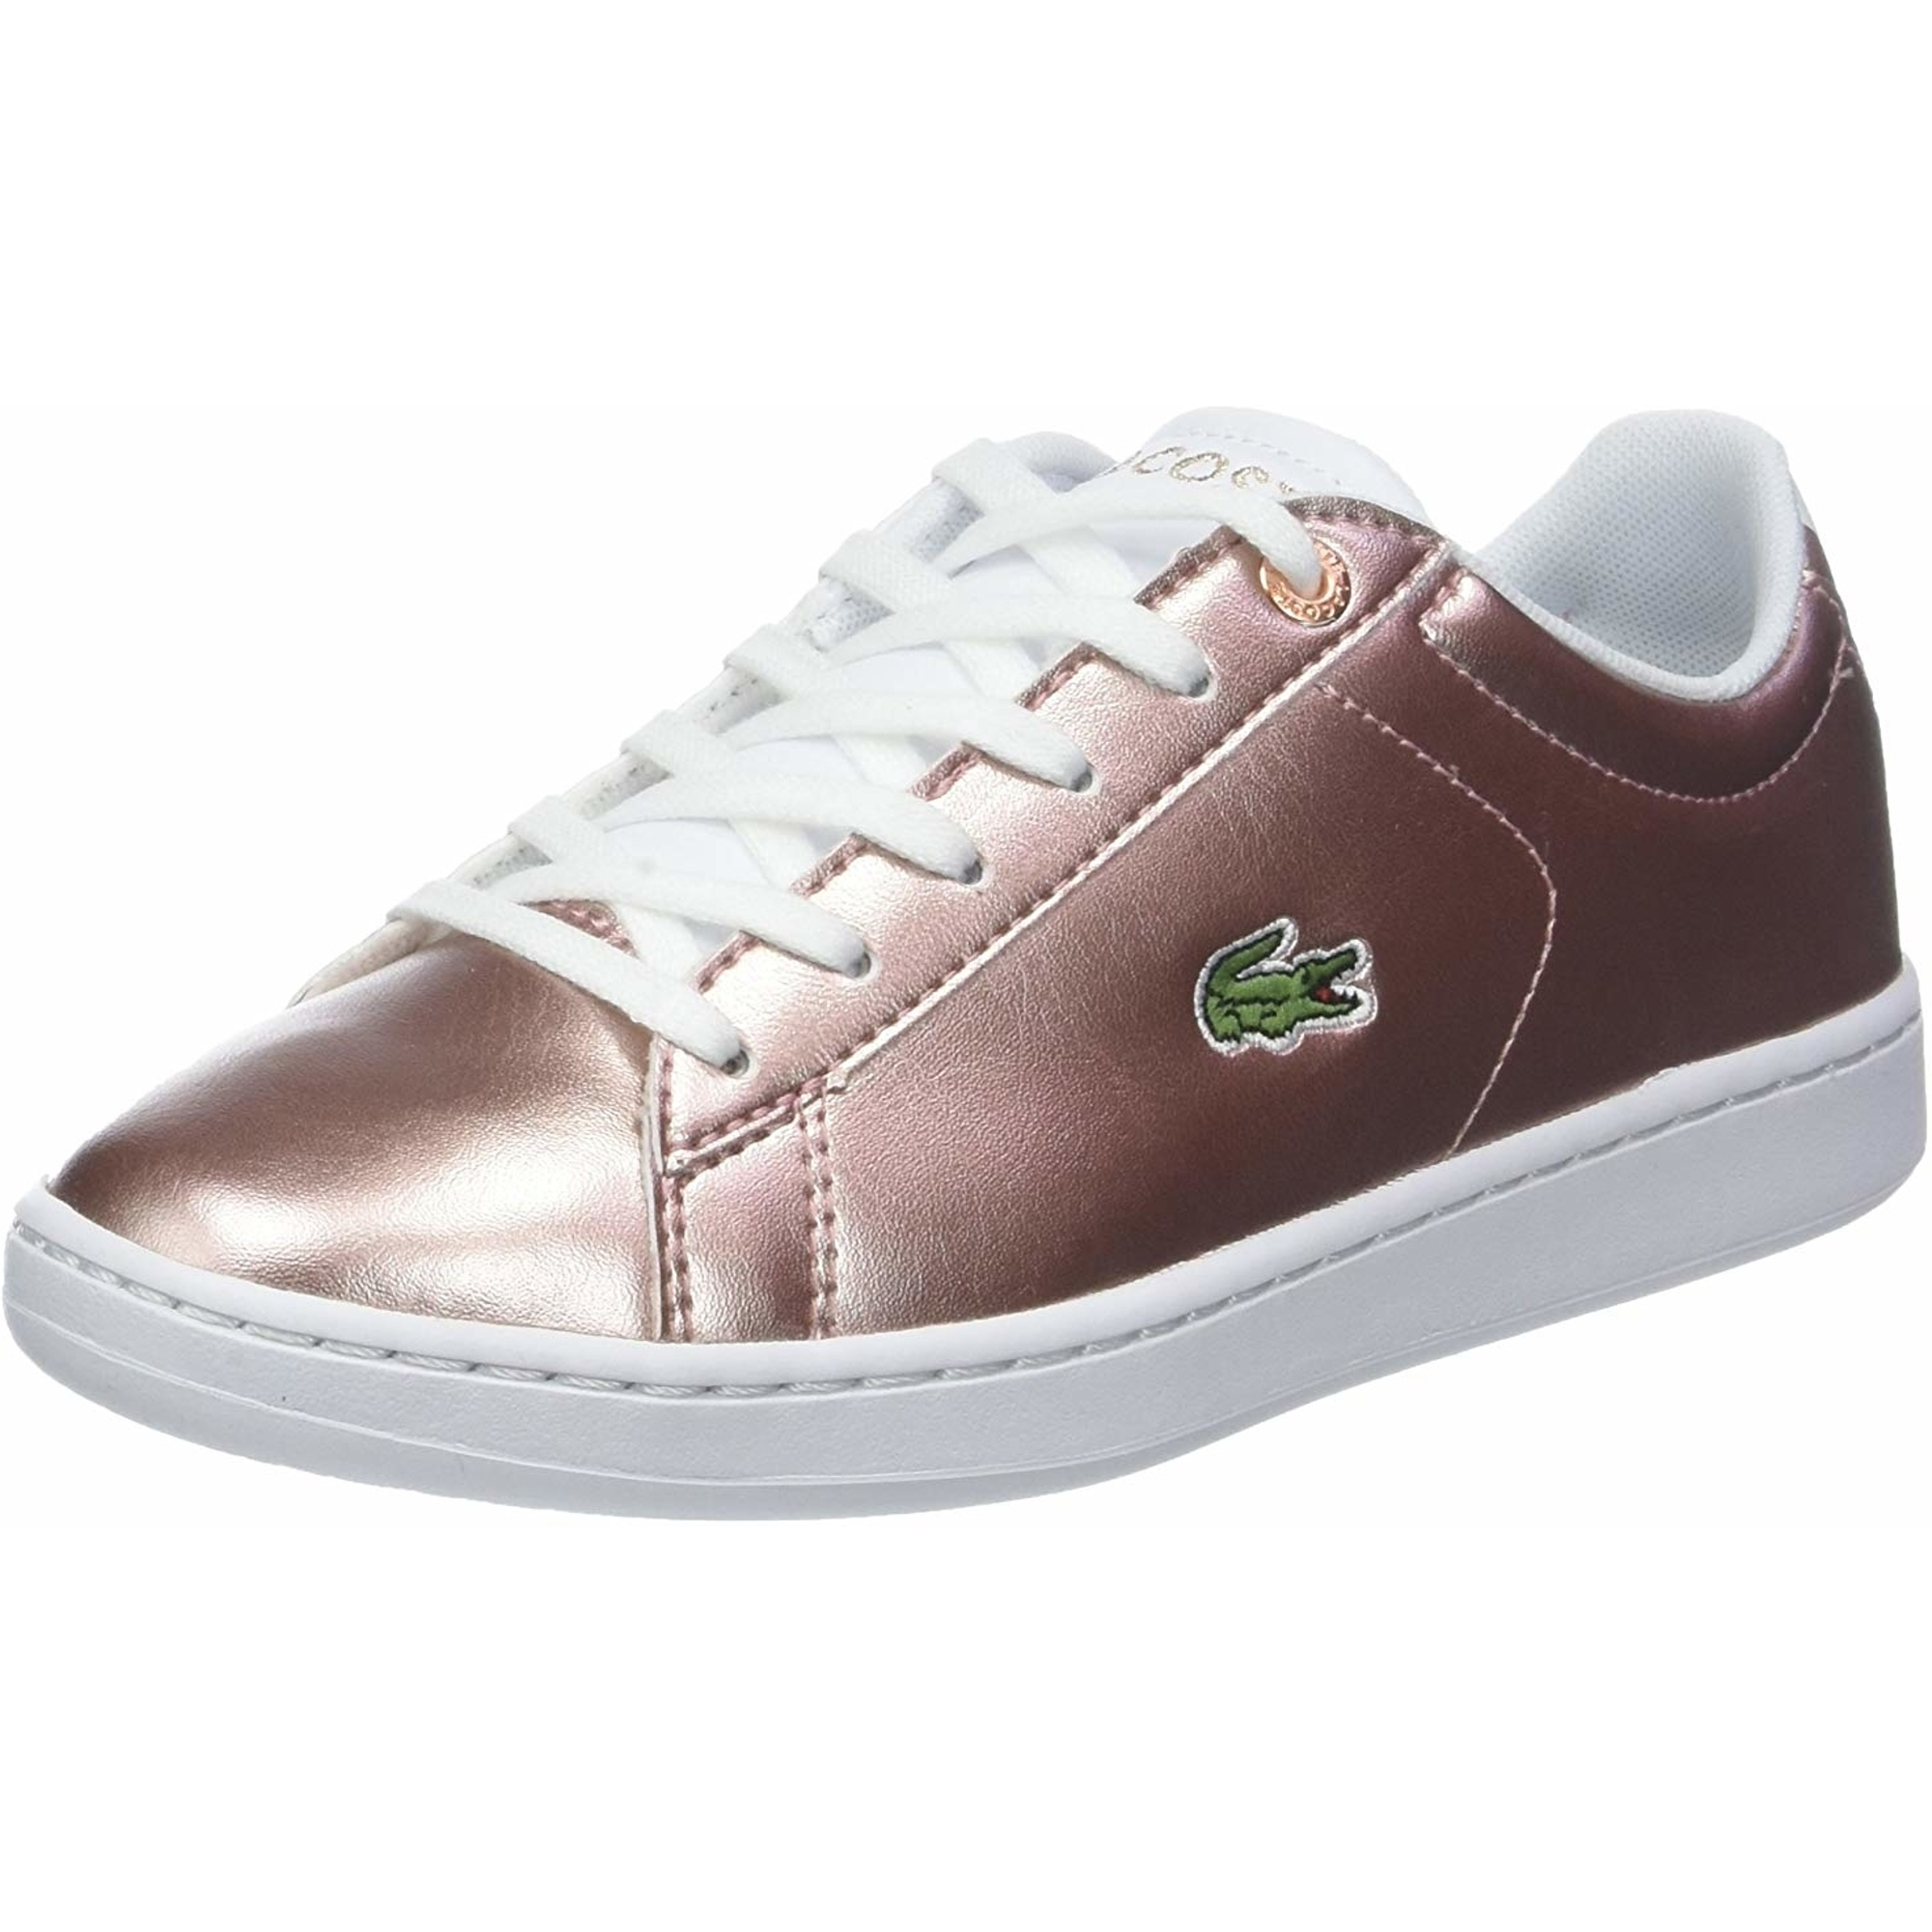 Lacoste Kids Carnaby Evo Metallic Pink Trainers *SAME DAY DISPATCH*